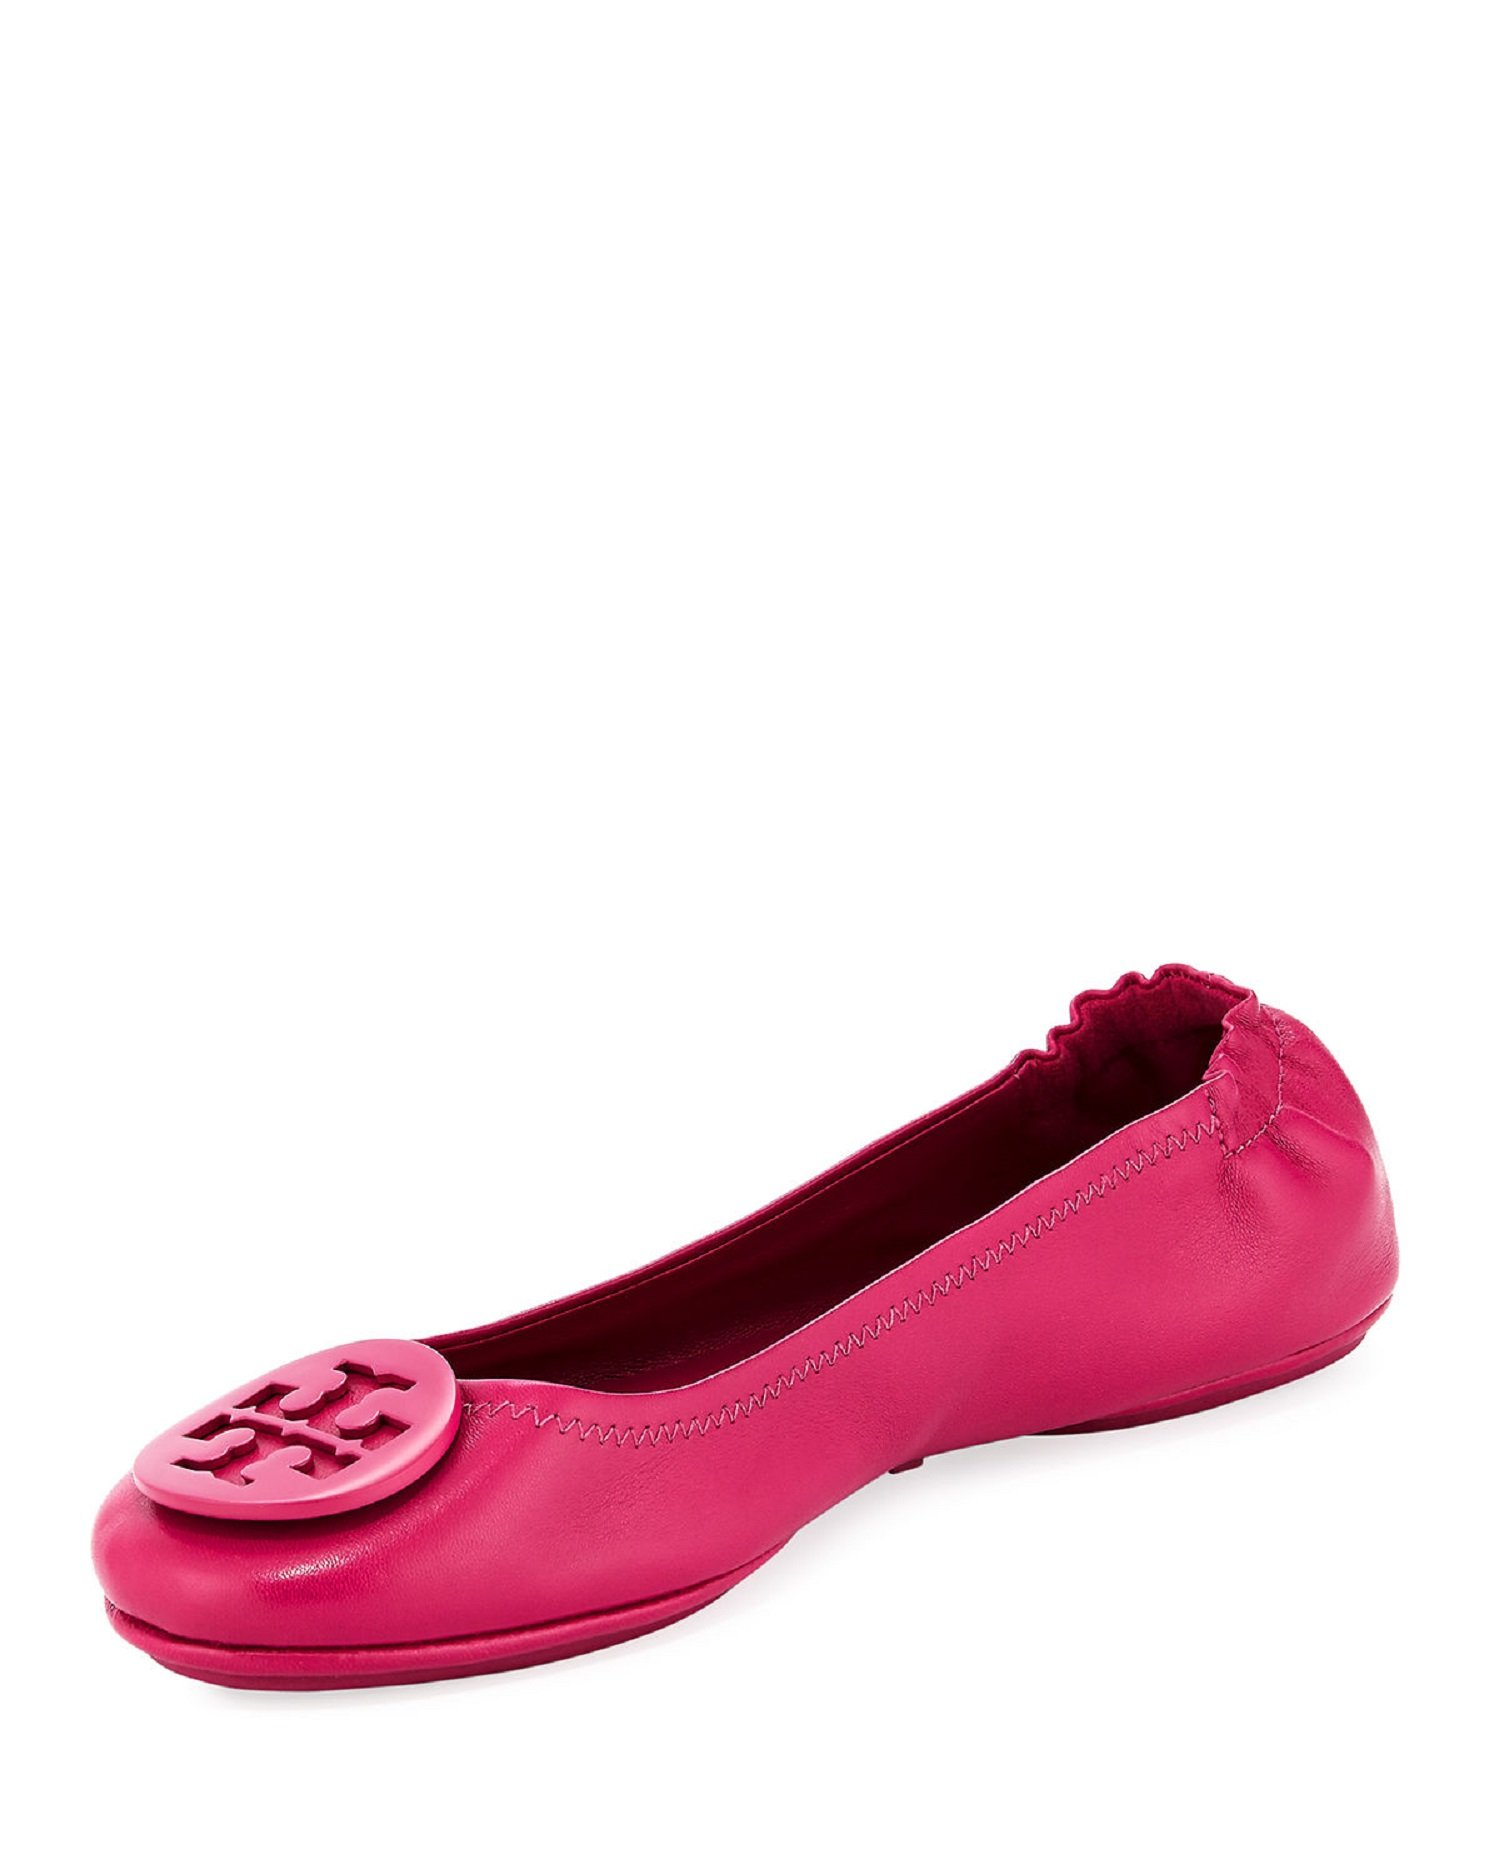 Tory Burch Minnie Ballet Travel Flats Signature Logo Fuschia Size 7